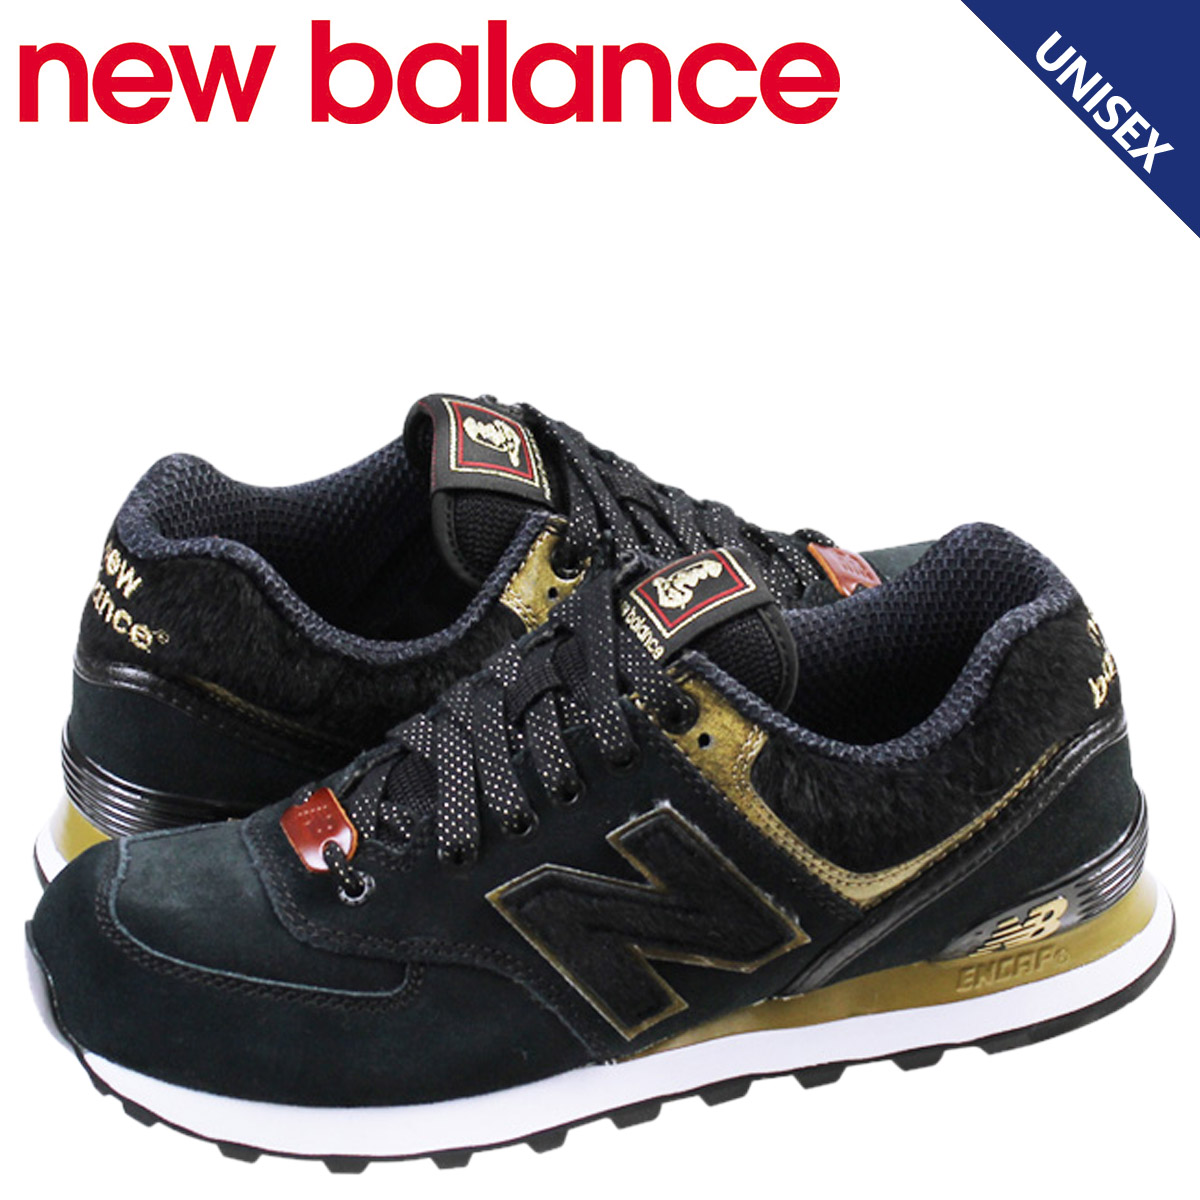 designer fashion 535a3 5490e new balance new balance 574 Womens sneakers ML574HBL D wise horse, men's  shoe black,